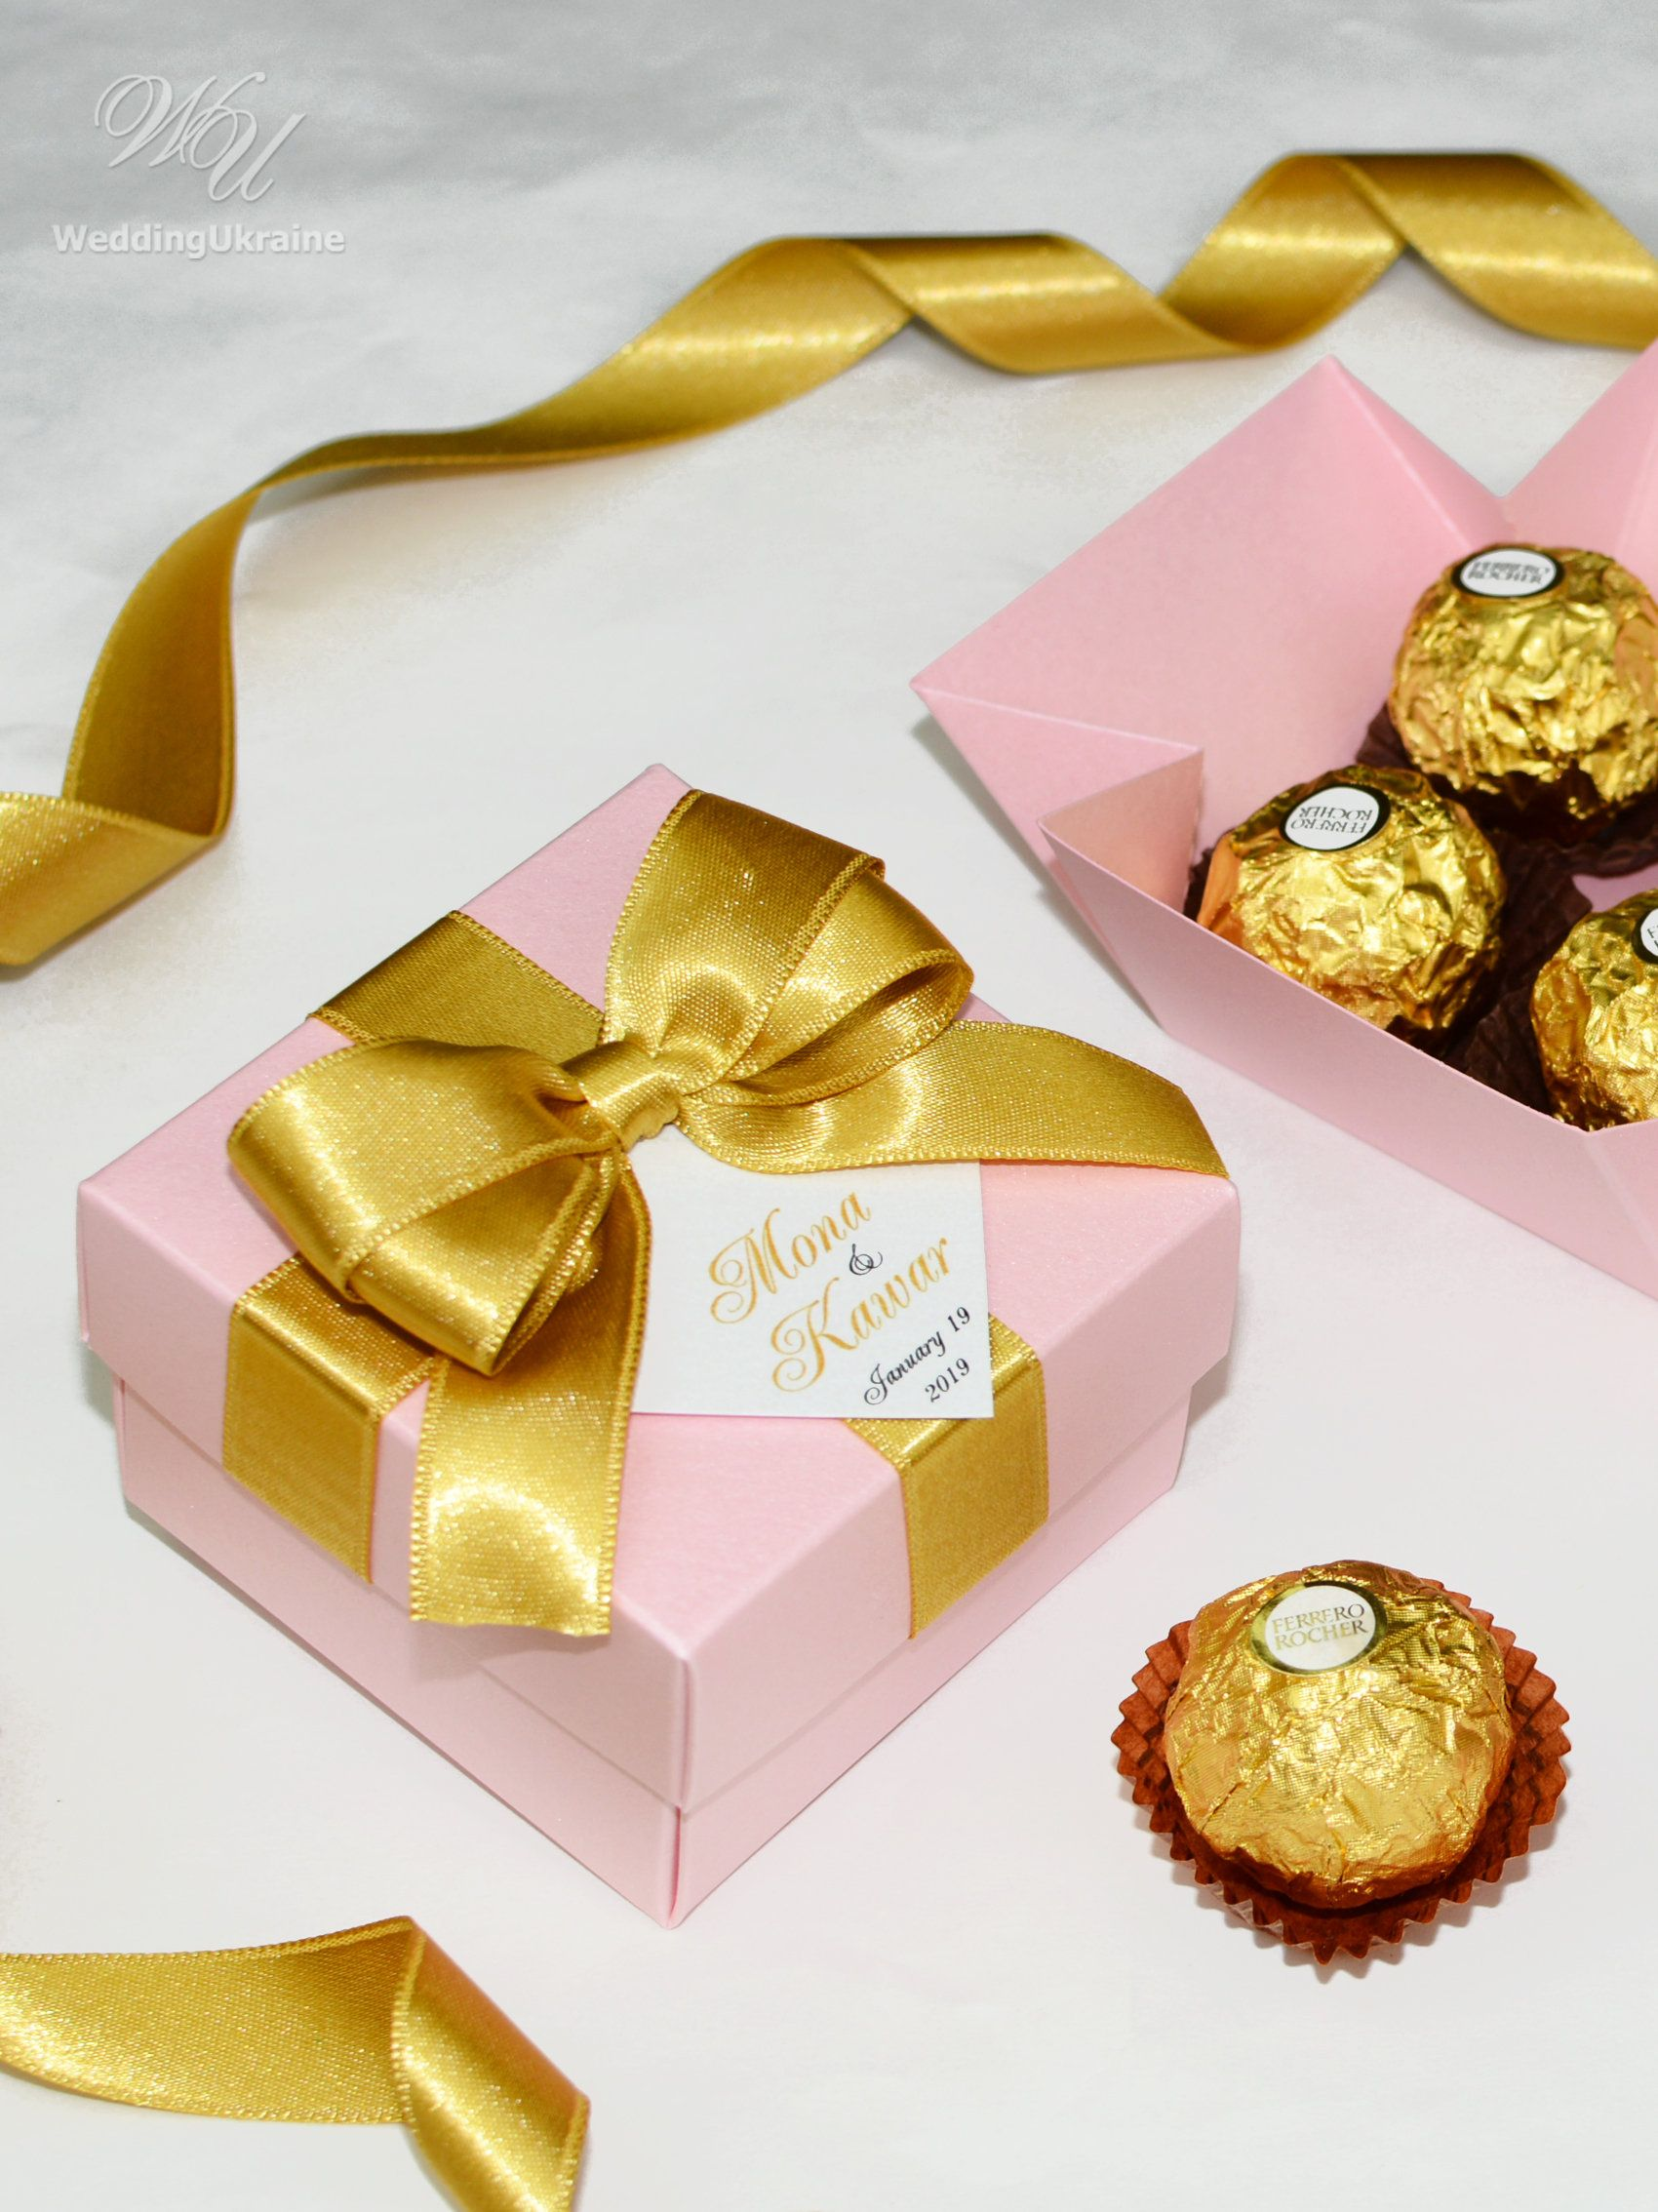 Elegant Wedding bonbonniere Personalized boxes for guests Light pink /& Gold wedding favor box with Gold satin ribbon bow and custom tag